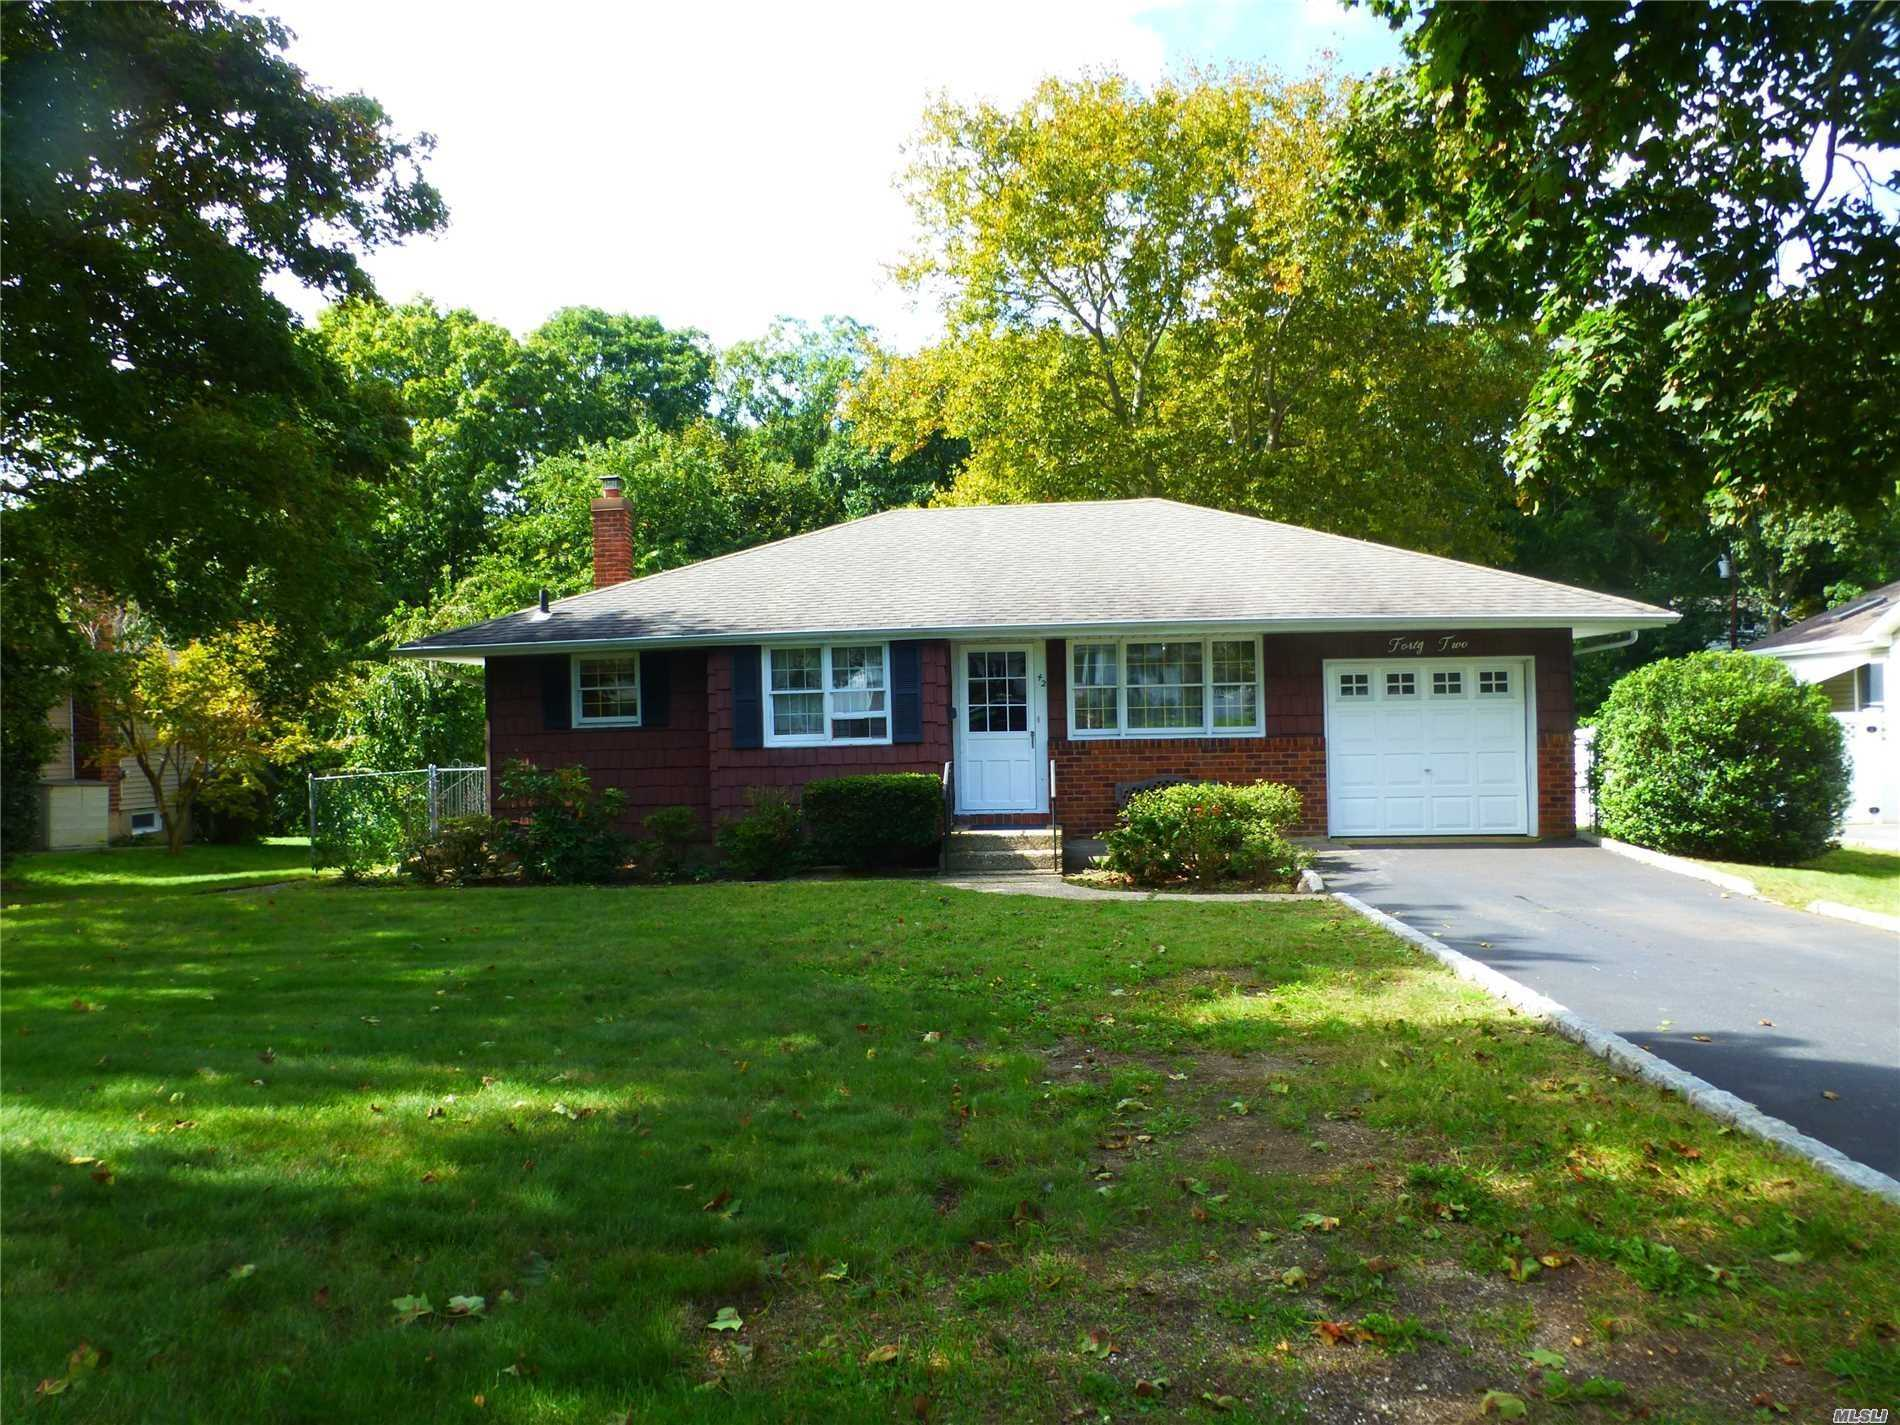 Original Owner, Well Maintained Home With Large Private Yard .32 Acre In Desired College Section. Updated Arch. Roof 2004' Electric 200 Amp. S.S Appliance Stove (2Yr) Peerless Furnace, Blown In Insulation, Gas Hookup To House Great Home In Great Neighborhood.